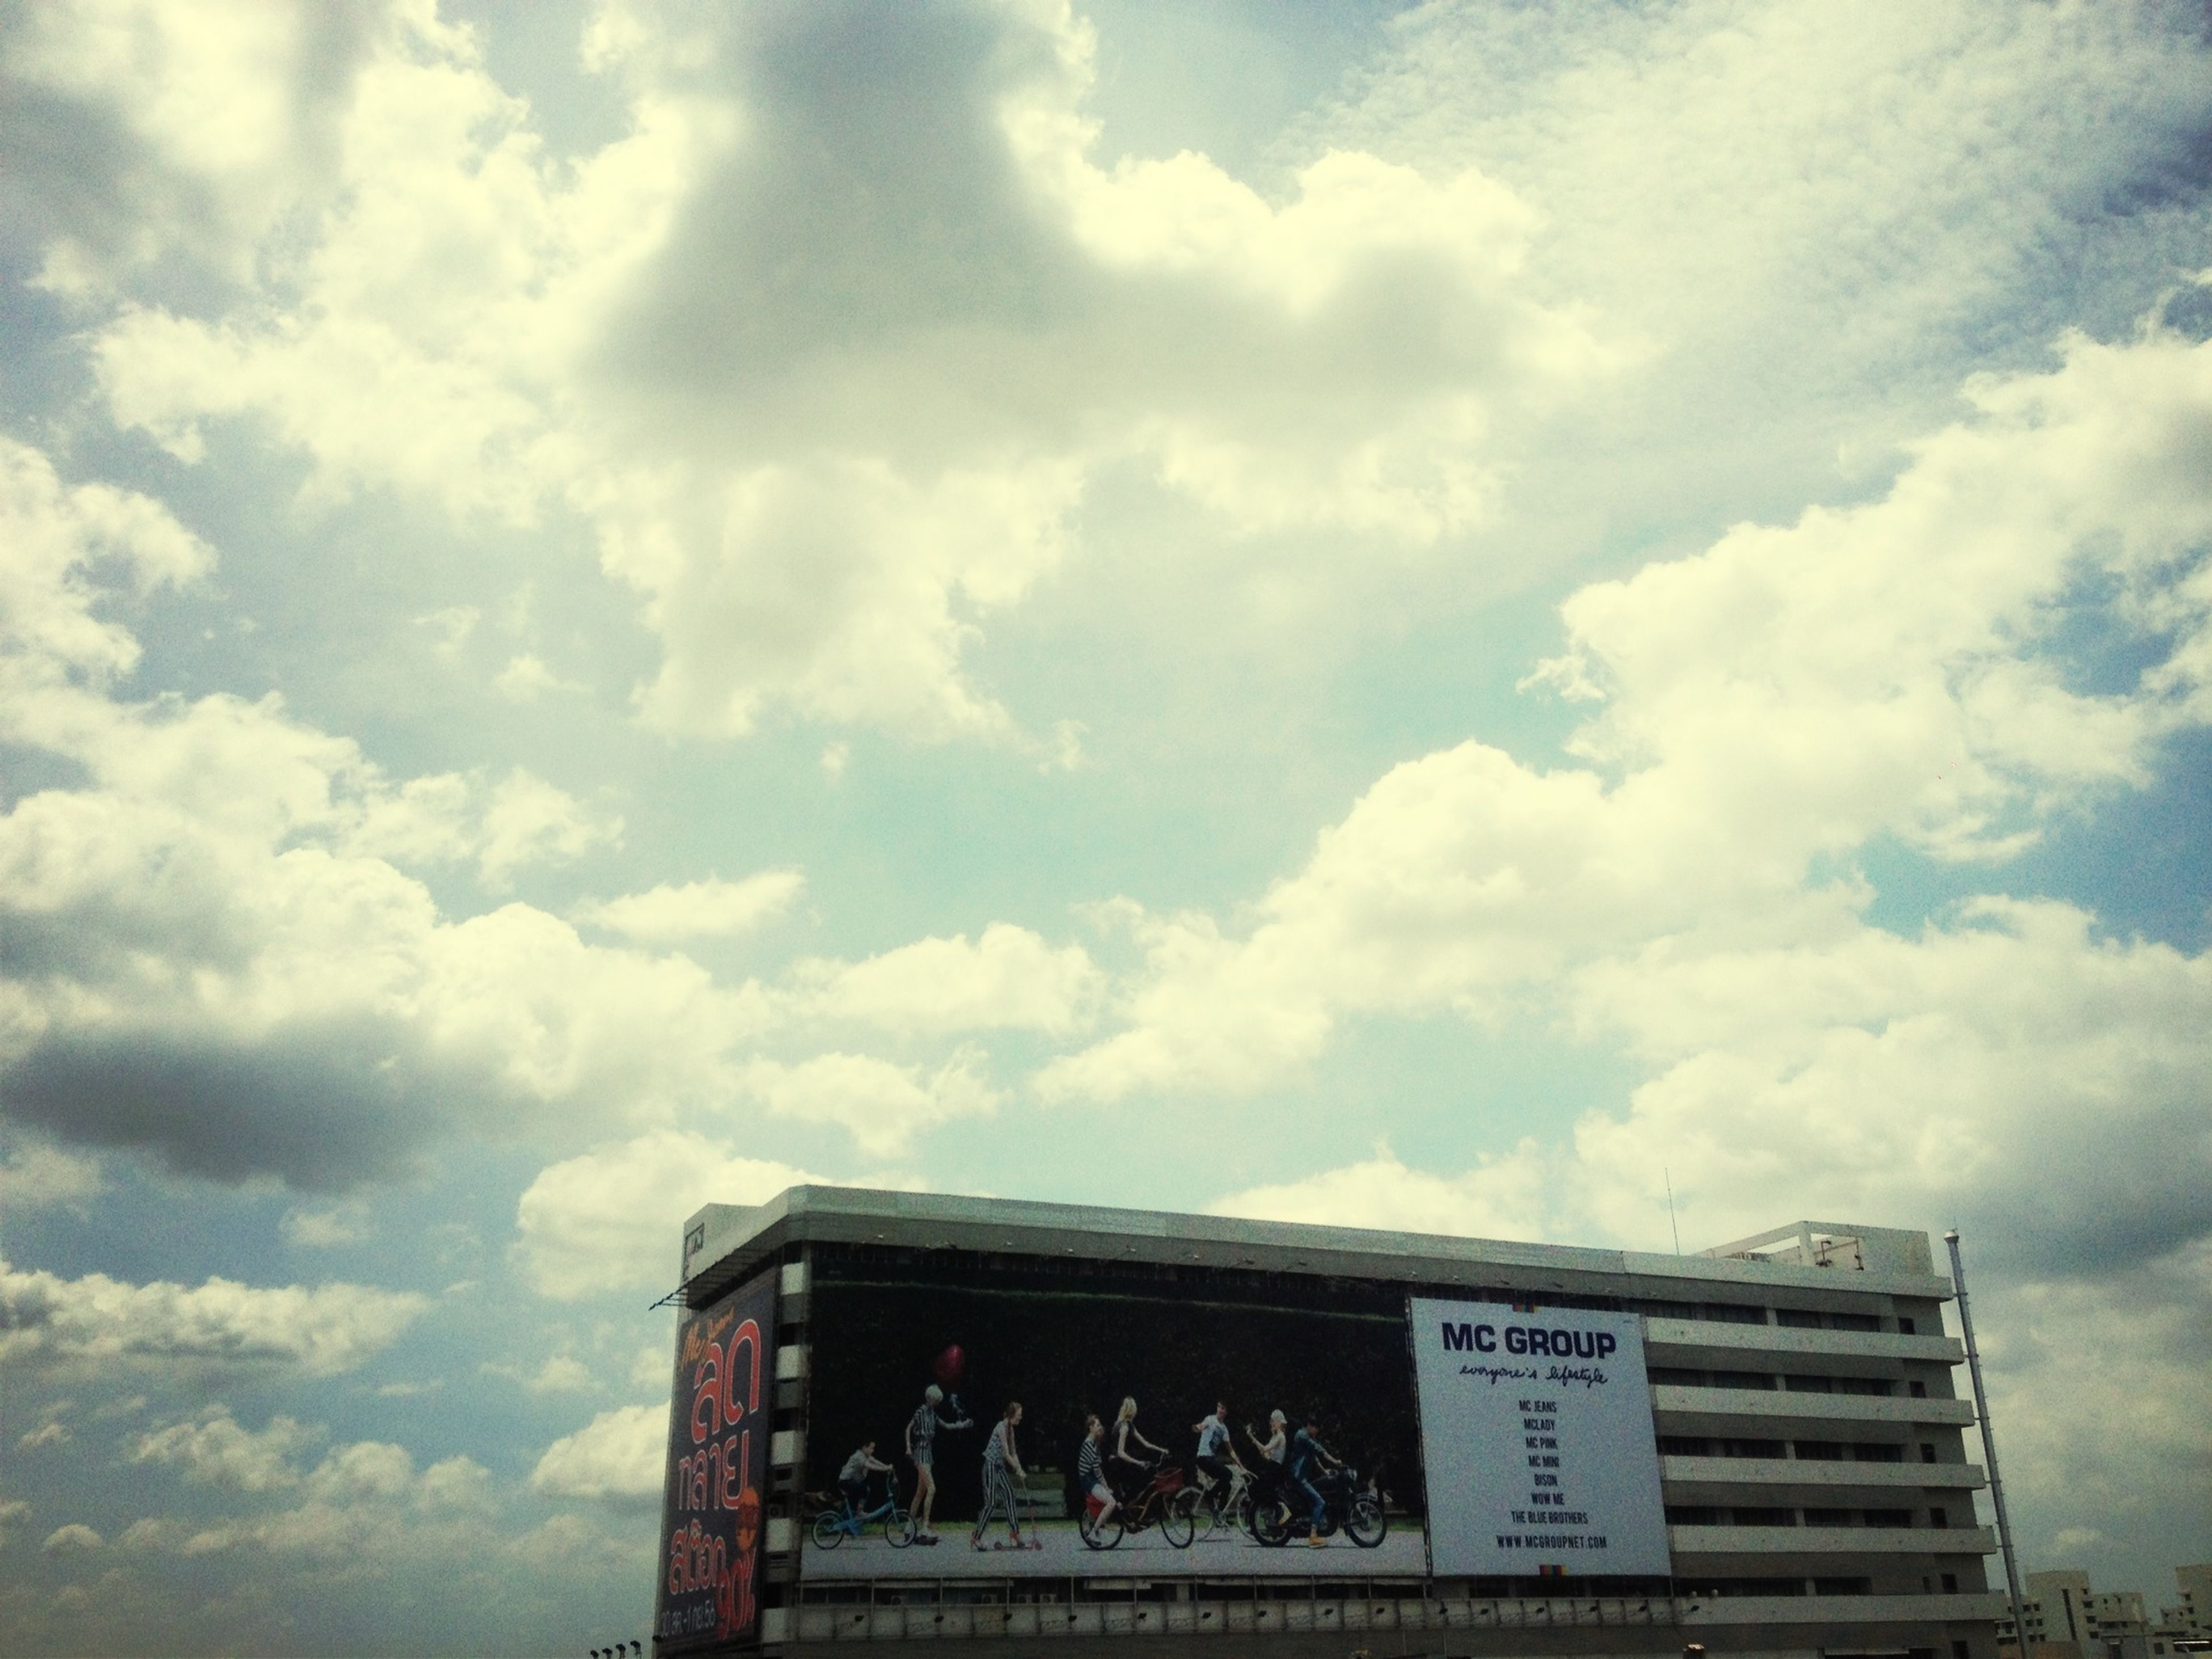 sky, text, cloud - sky, low angle view, western script, communication, cloudy, built structure, building exterior, architecture, cloud, day, capital letter, outdoors, information, no people, sign, non-western script, information sign, building